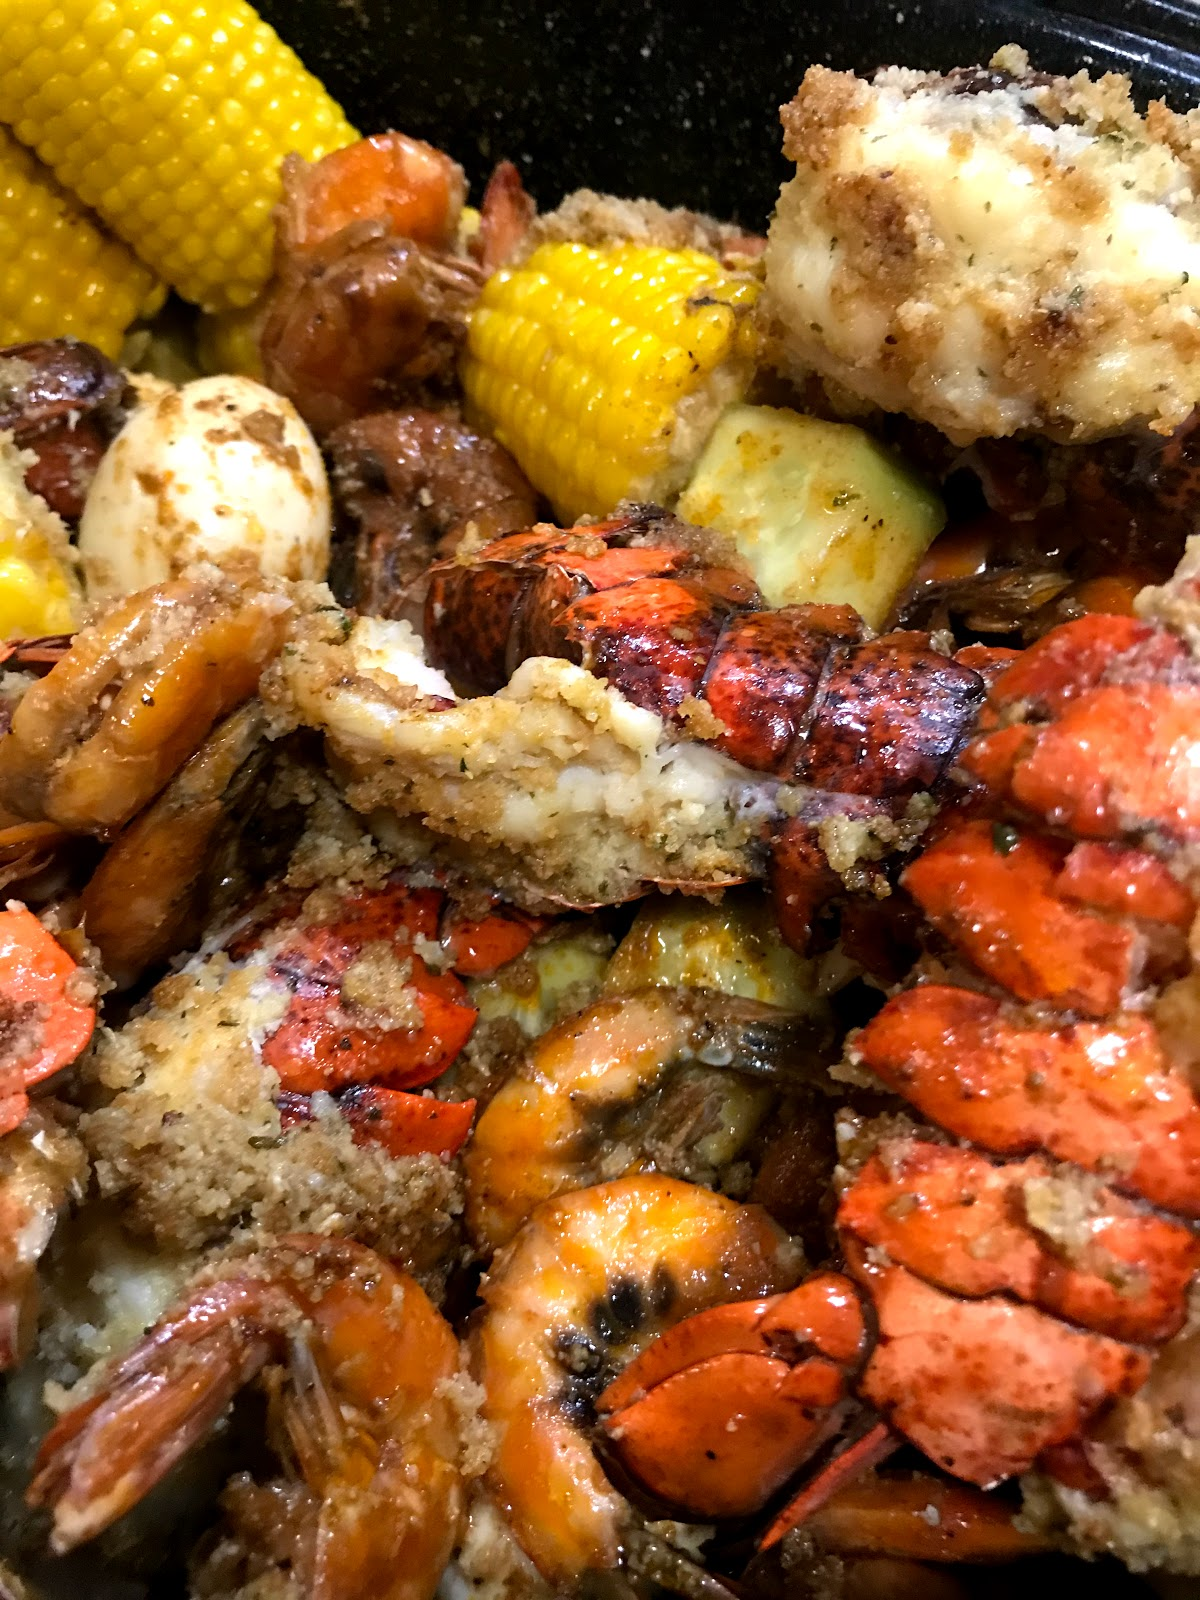 Having a seafood boil for the Holidays. We will be serving fried catfish, lobster, boiled corn, eggs, and peeled shrimp